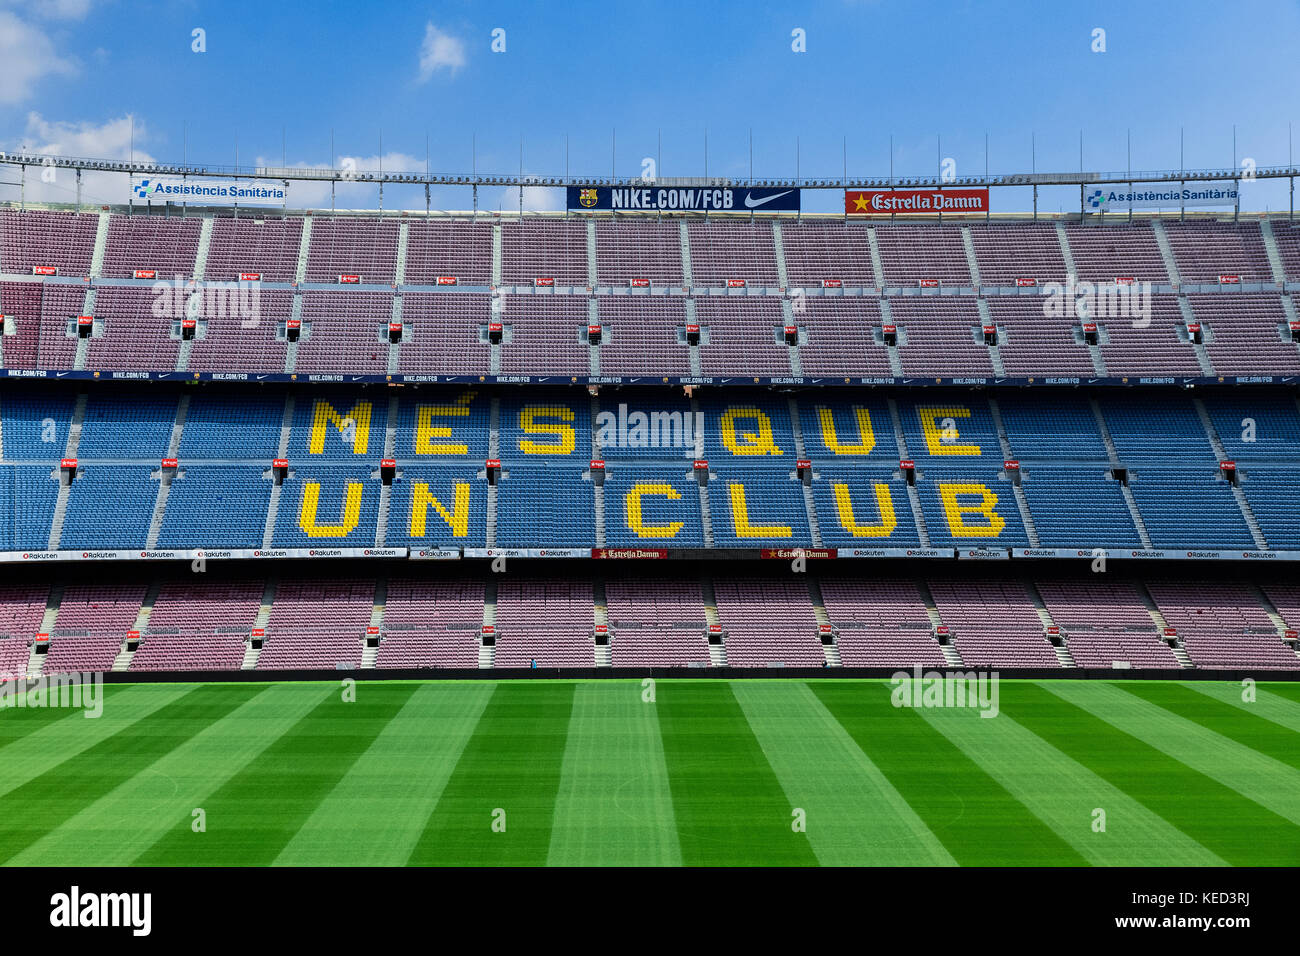 Camp Nou stadium interior, Barcelona, Spain. - Stock Image